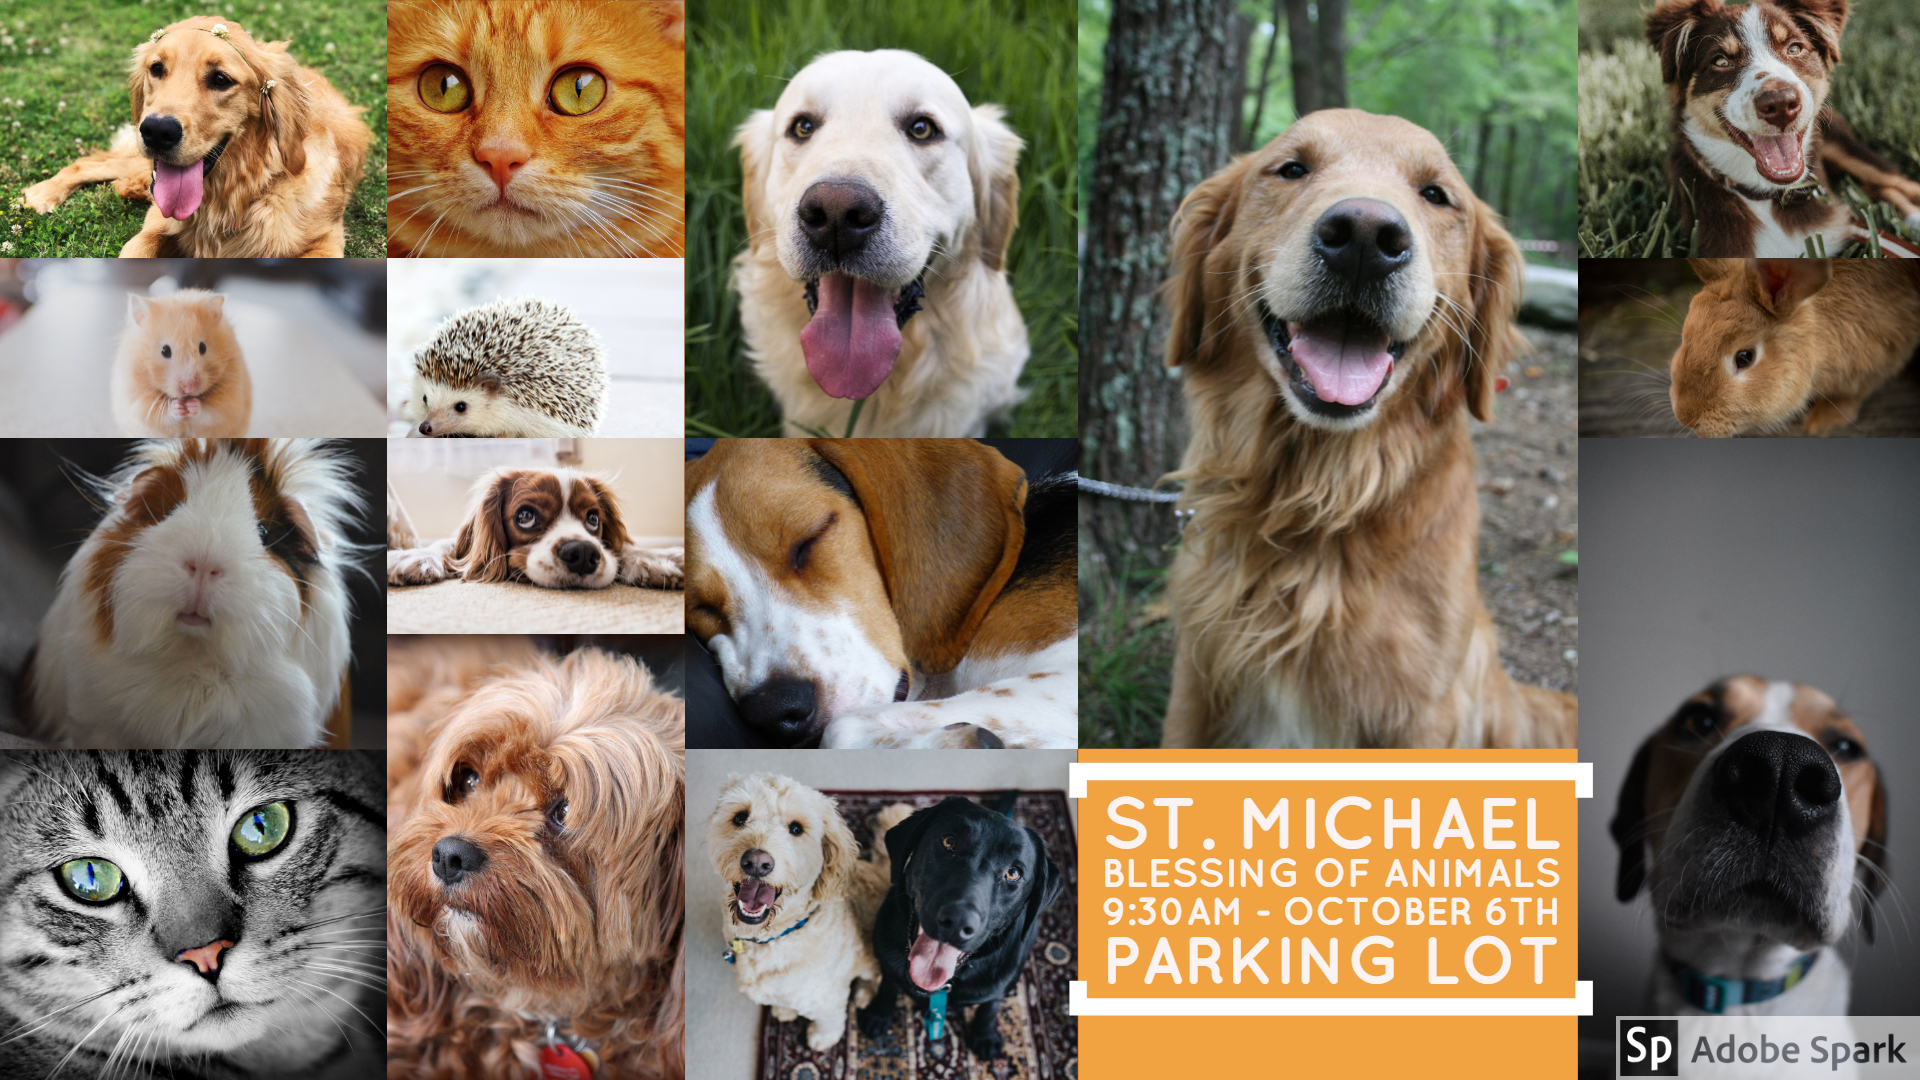 Blessing of Animals – October 6 at 9:30am